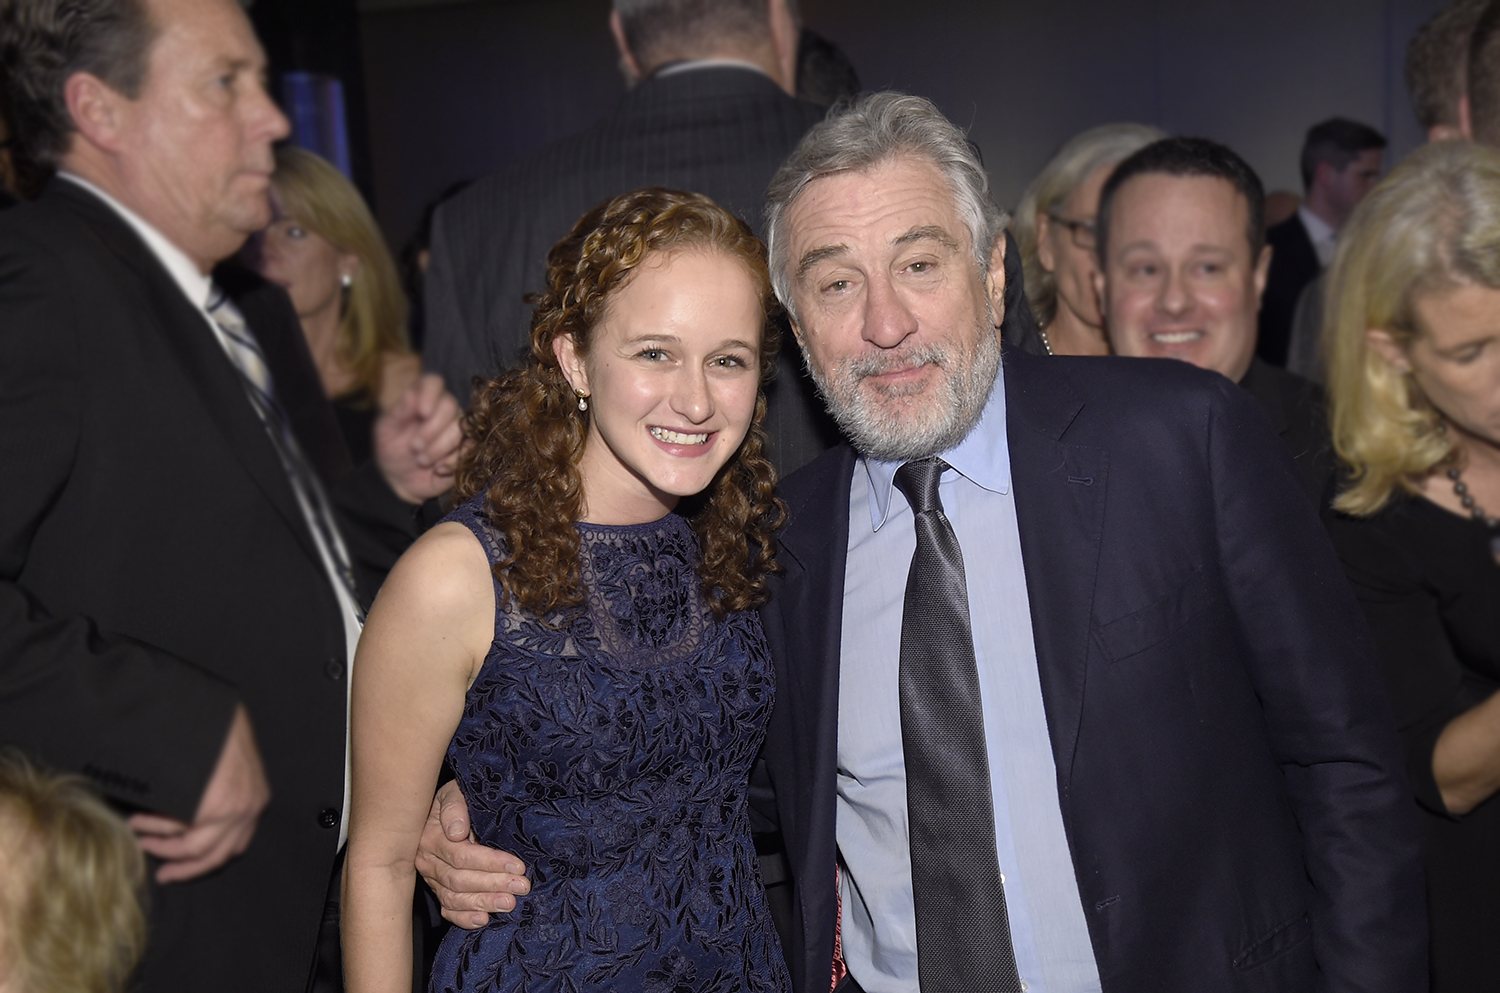 Ella Israeli '17 mingled with entertainer/philanthropist Robert De Niro at the Ripple of Hope Gala and Awards Dinner, held Dec. 16 in New York City.  The event was supported by the Robert F. Kennedy Center for Justice and Human Rights.